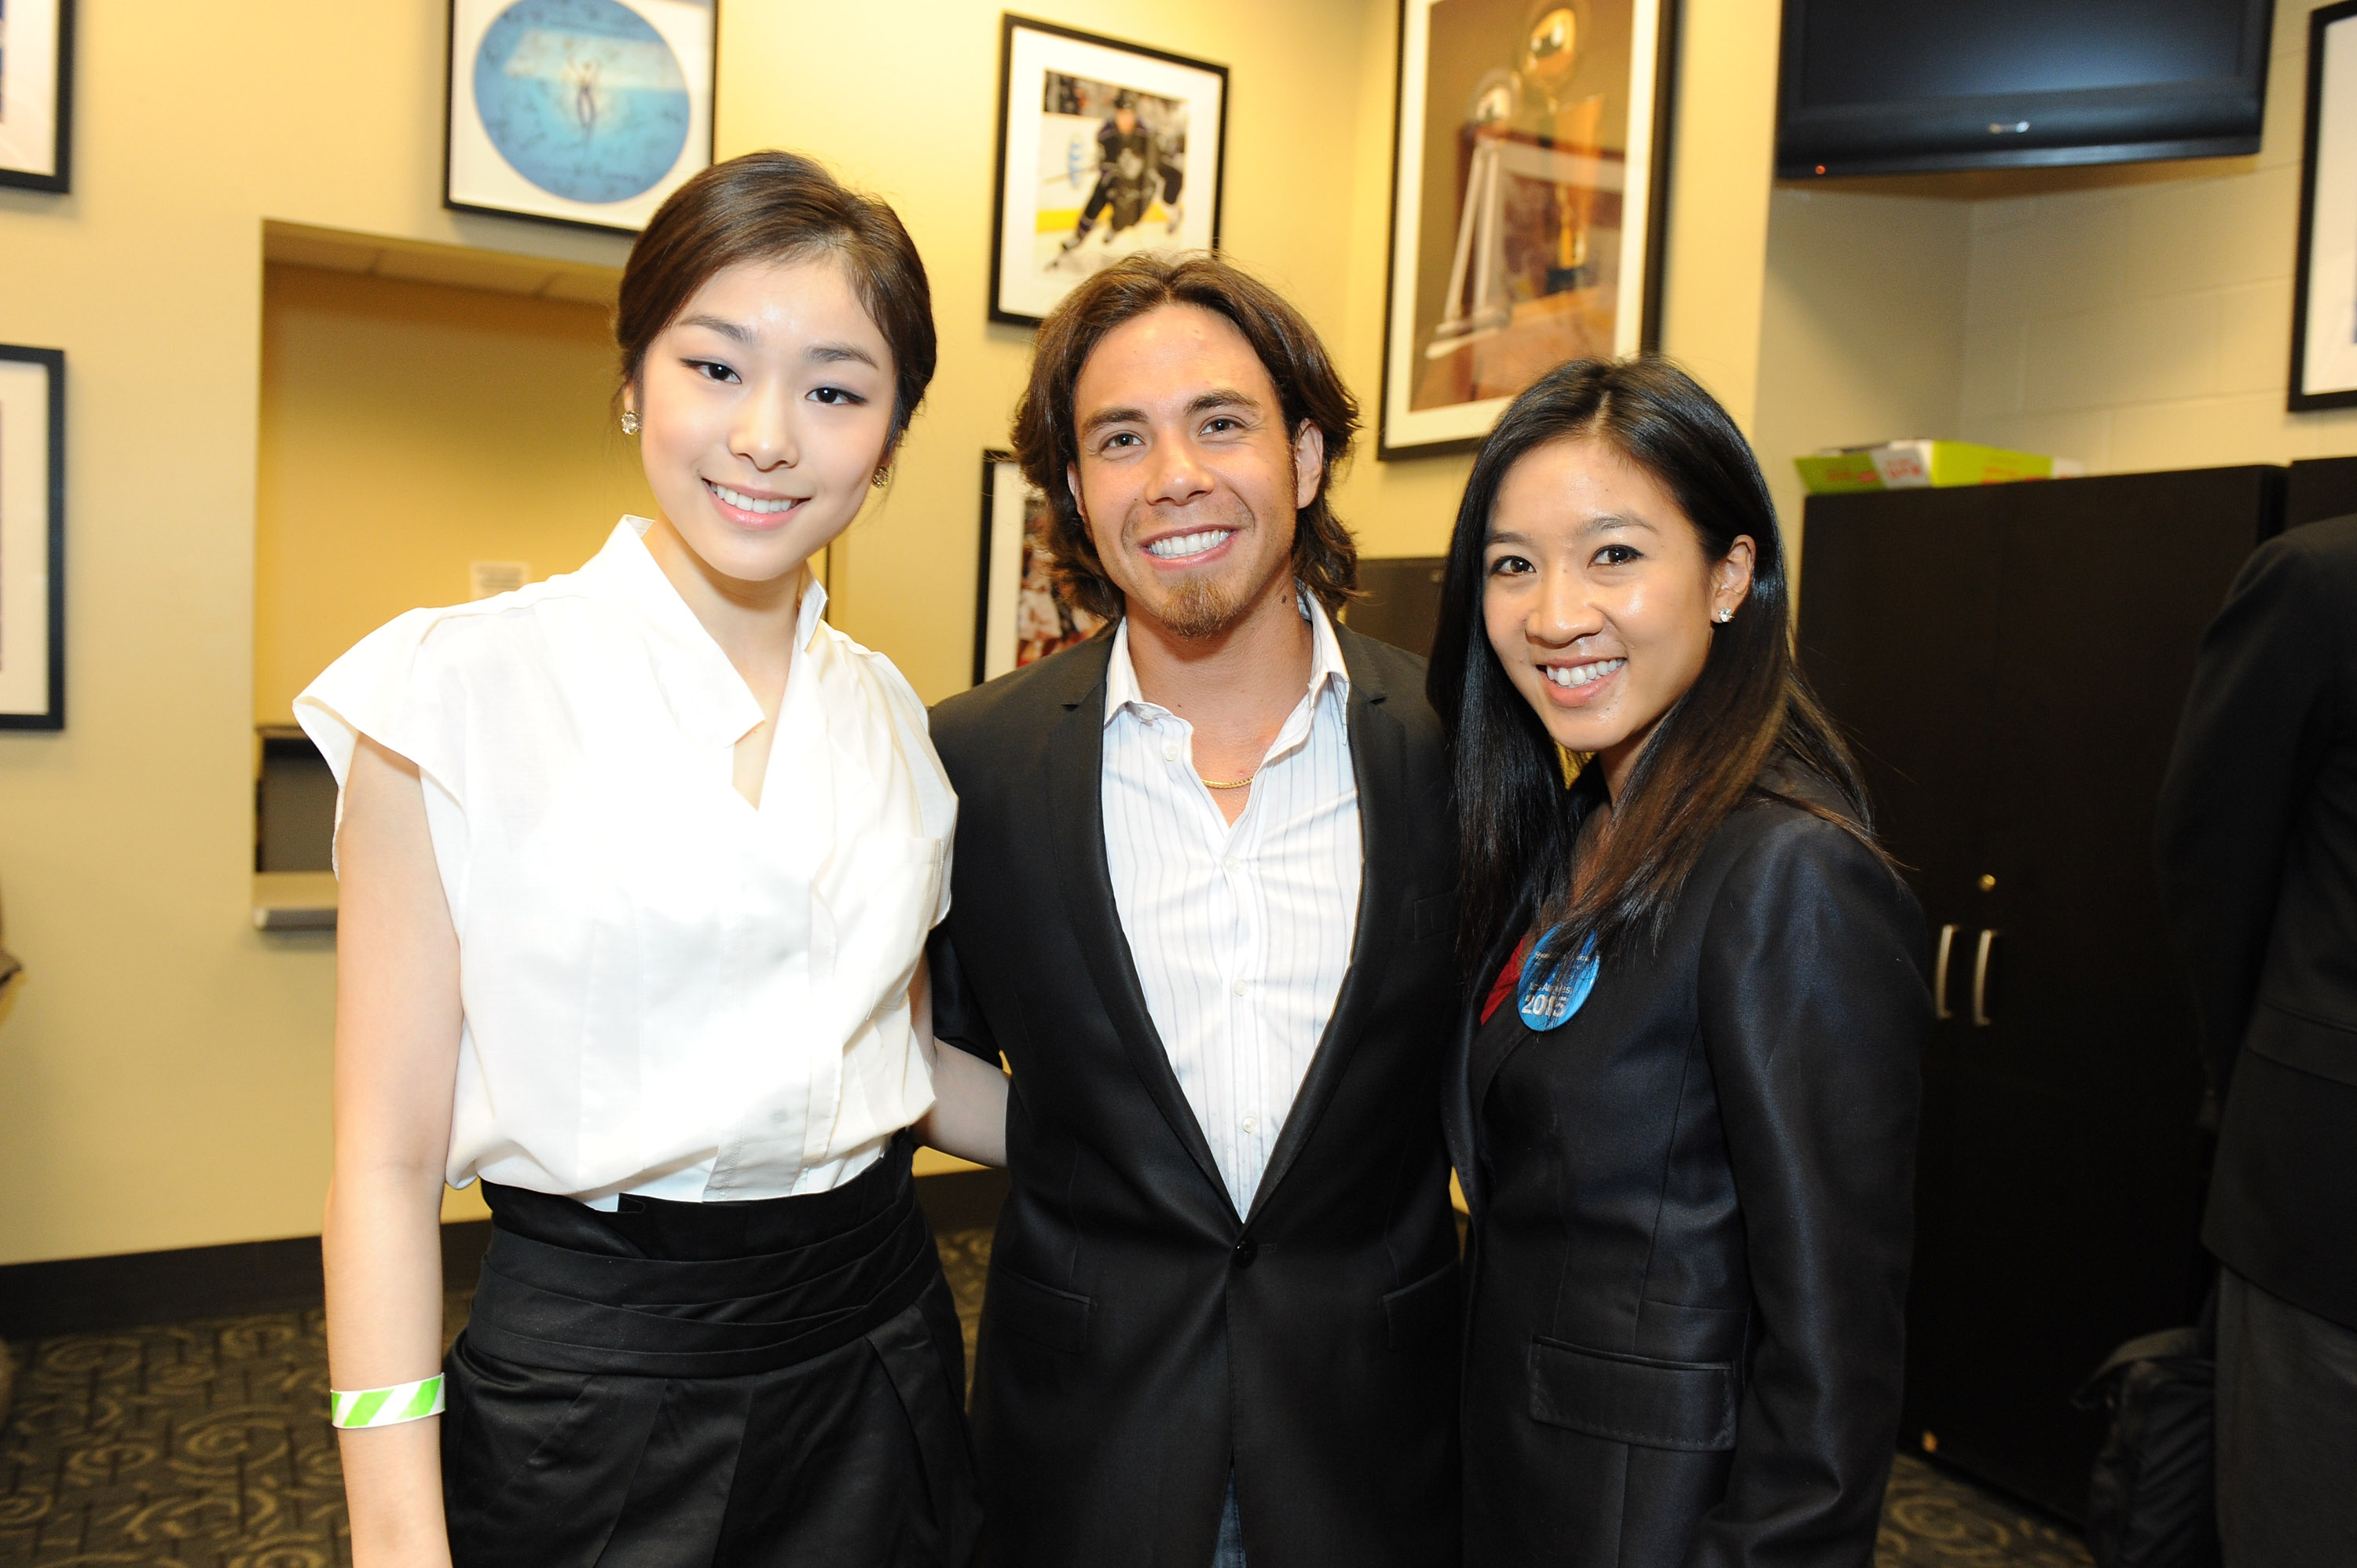 Olympic athletes Yuna Kim, Apolo Ono and Michelle Kwan attend the Special Olympics LA 2015 World Games press conference at Staples Center on September 14, 2011 in Los Angeles, California. (Photo by Jordan Strauss/WireImage)